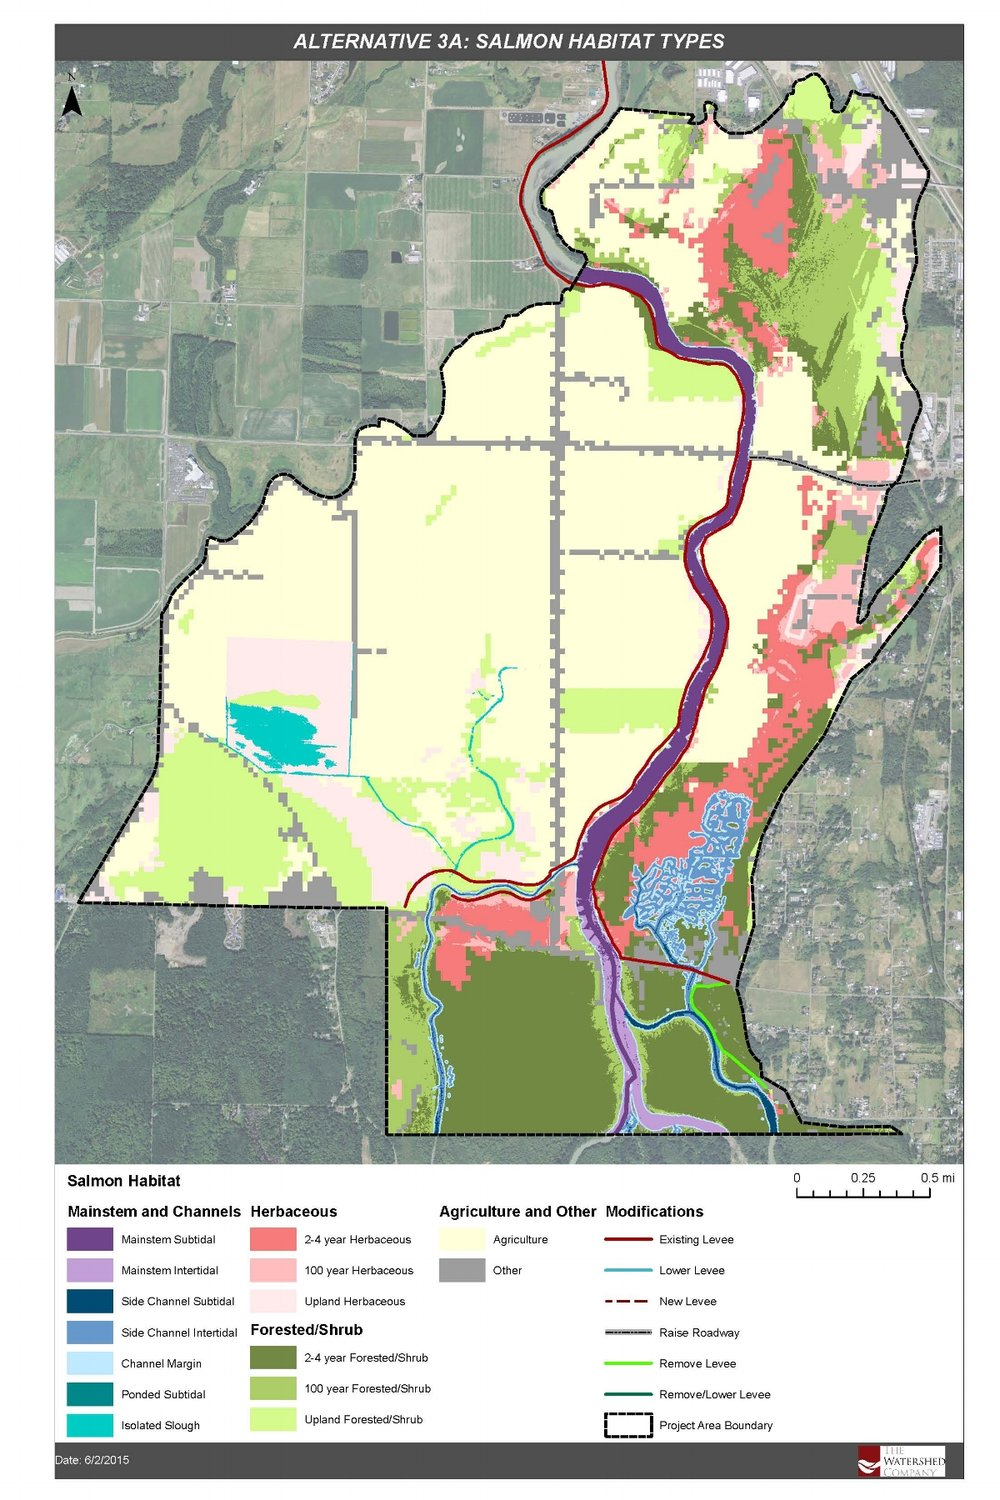 Salmon Habitat Types GIS for Lower Nooksack River alternatives analysis in Whatcom County by The Watershed Company.